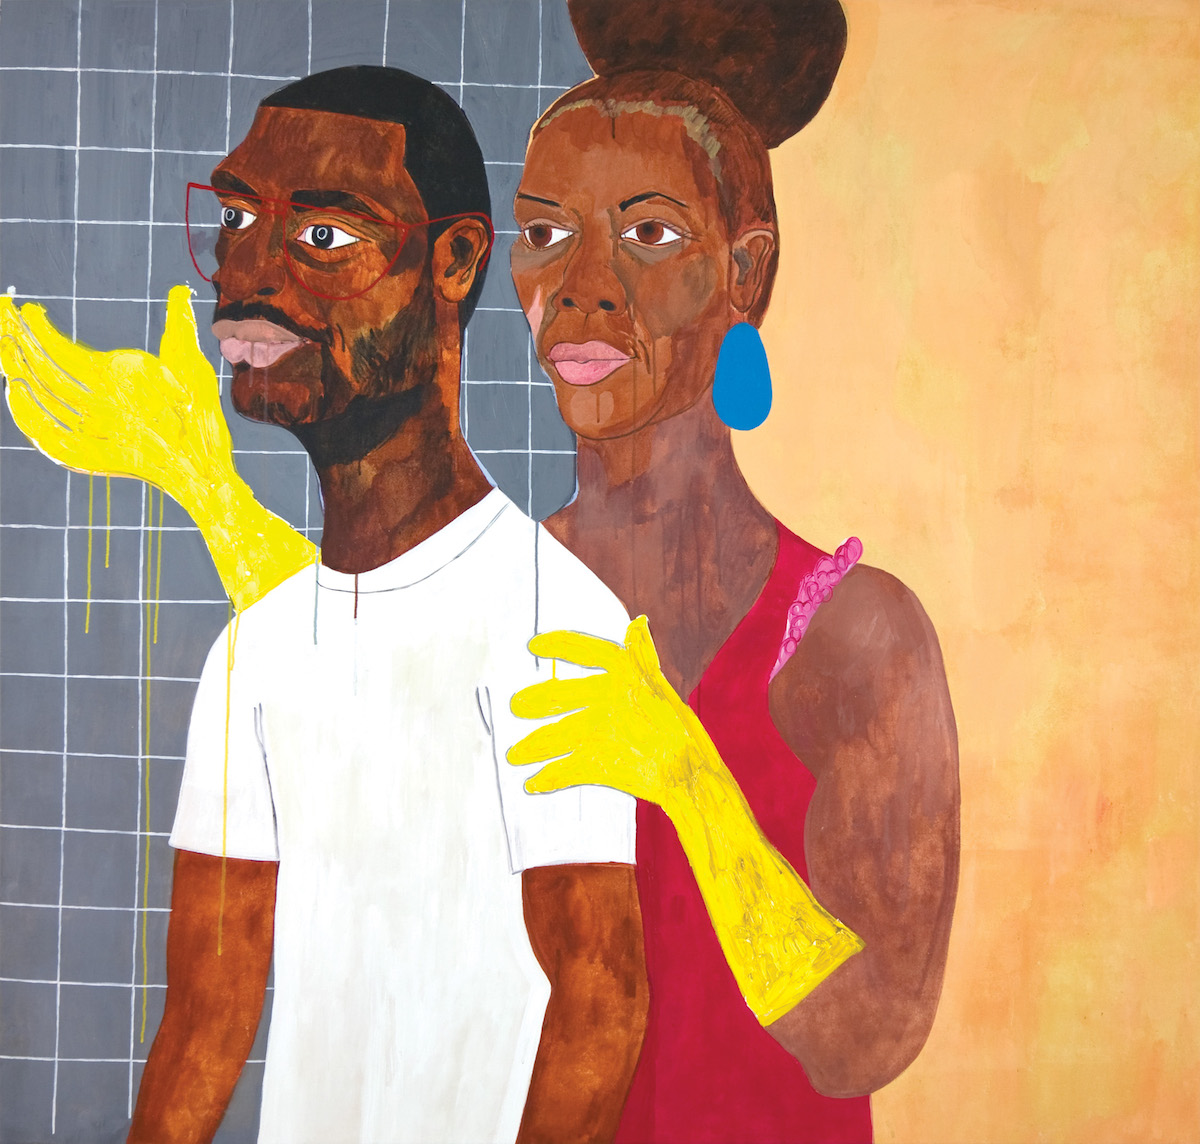 Double portrait in three-quarter pose of a woman with medium-dark skin tone wearing yellow rubber gloves holding the arm of a man in front of her.